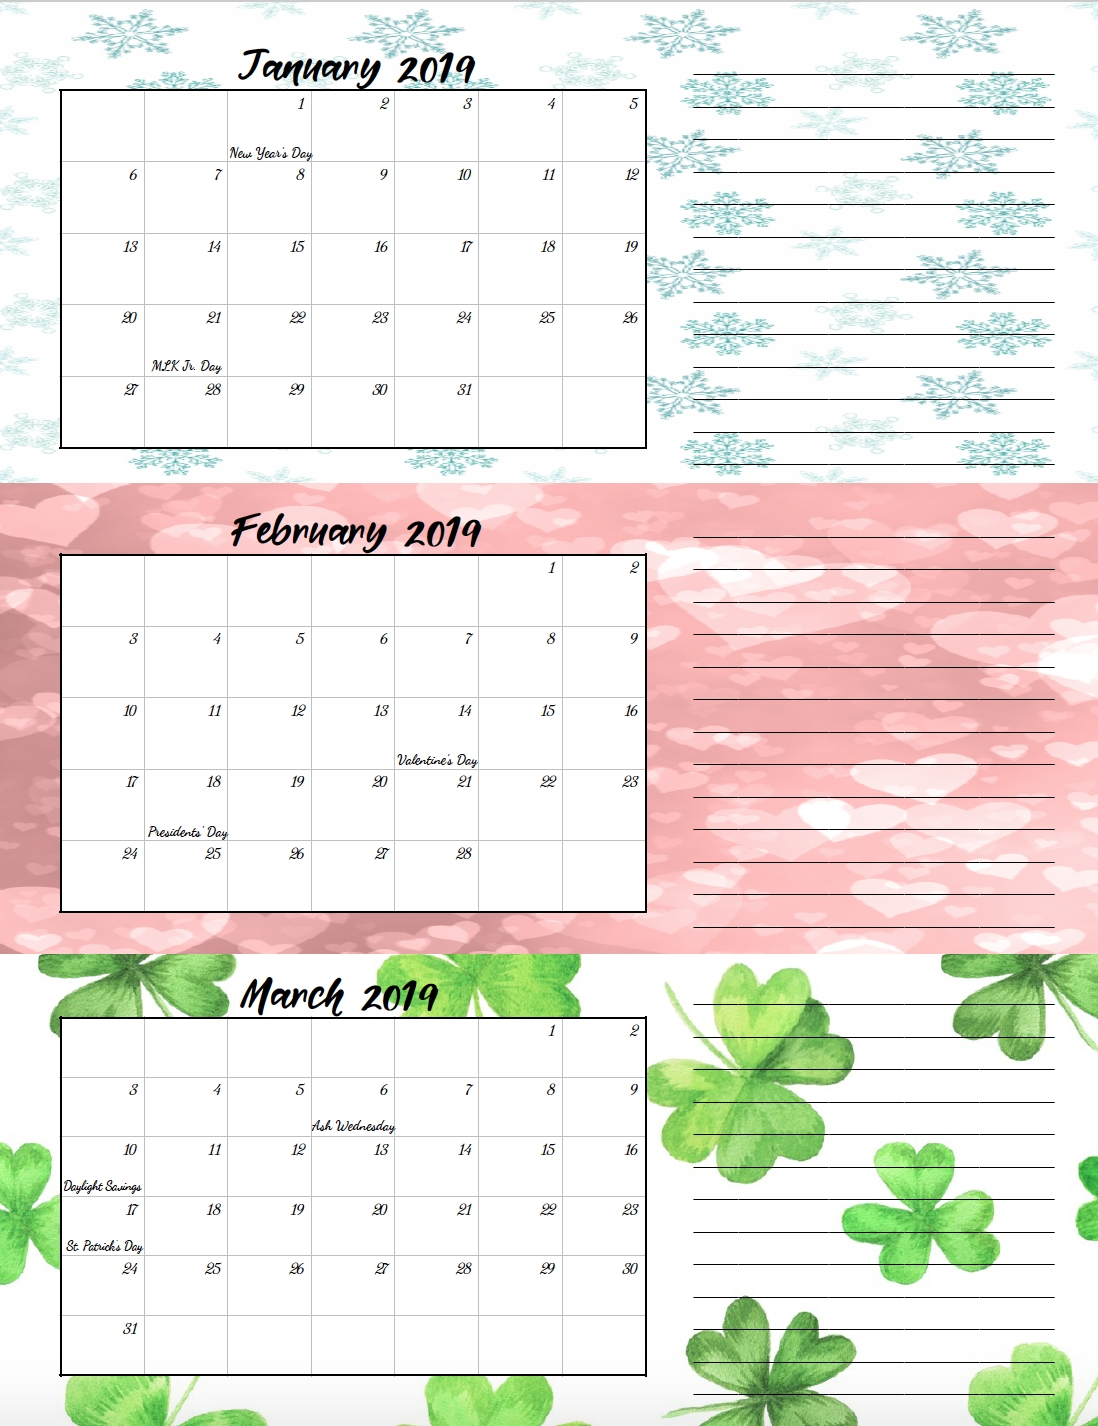 Free Printable 2019 Quarterly Calendars With Holidays: 3